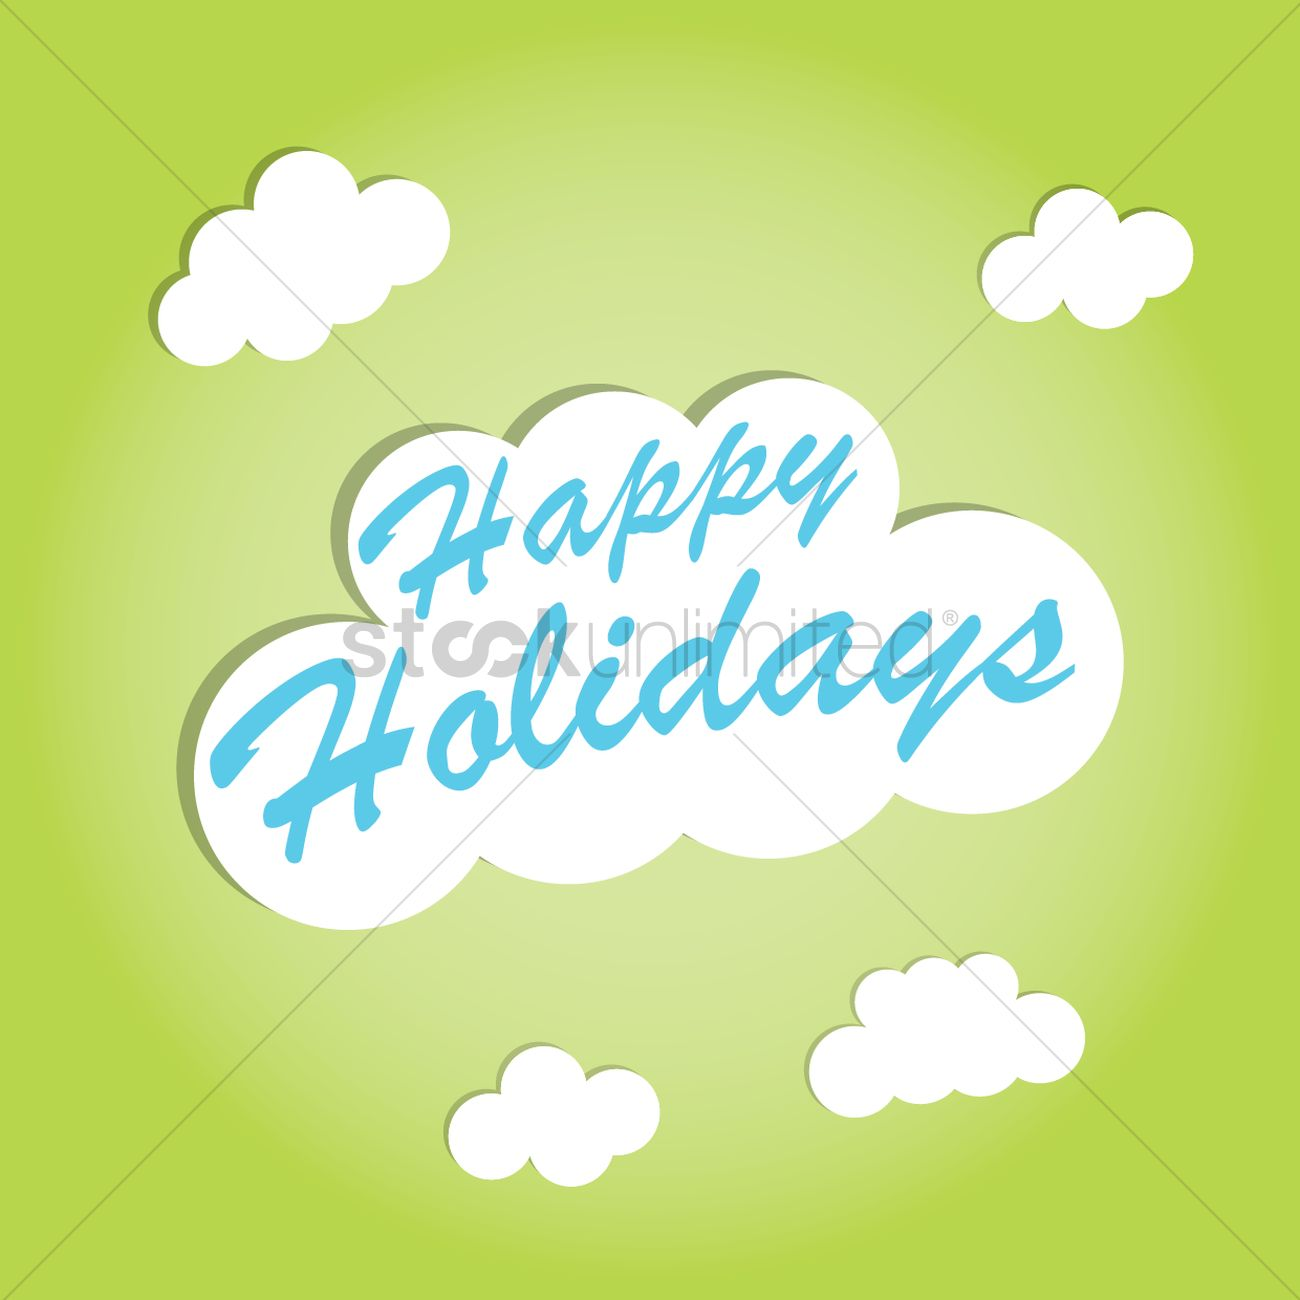 Happy Holidays Greeting Card Vector Image 1522240 Stockunlimited